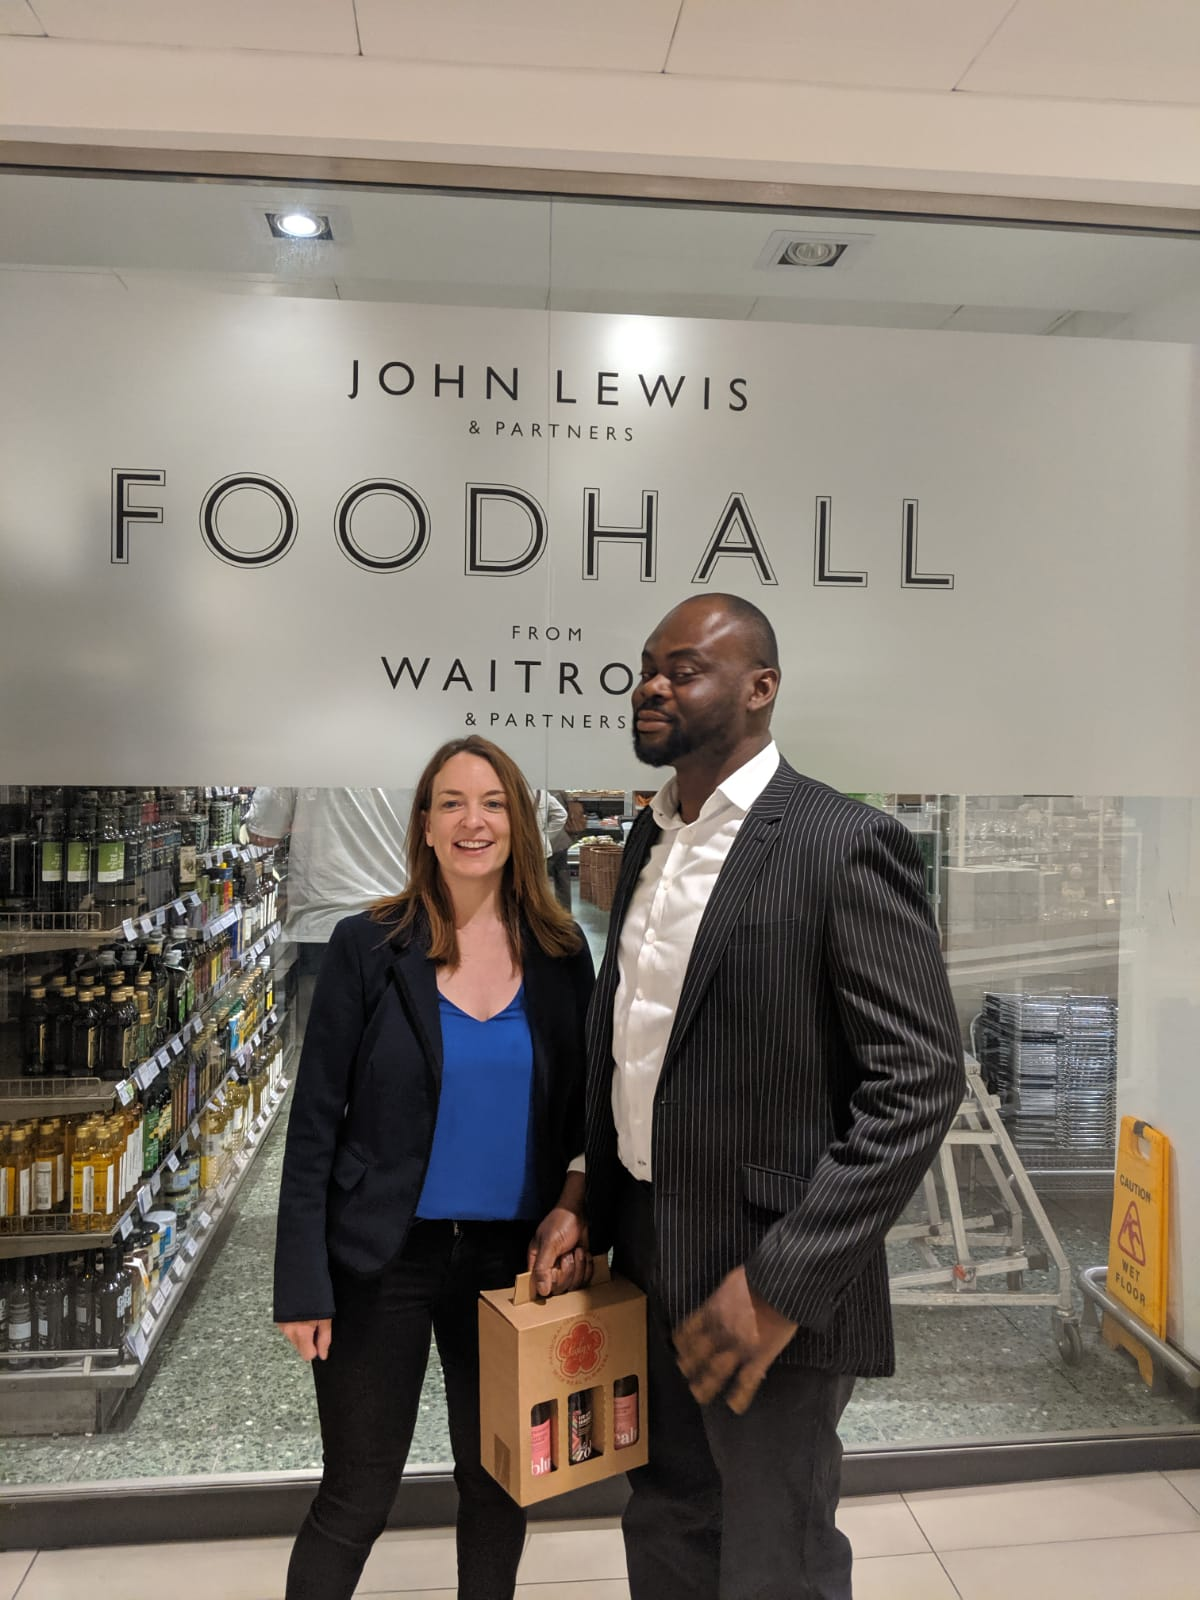 Calyx Drinks is coming to John Lewis & Partners Foodhall